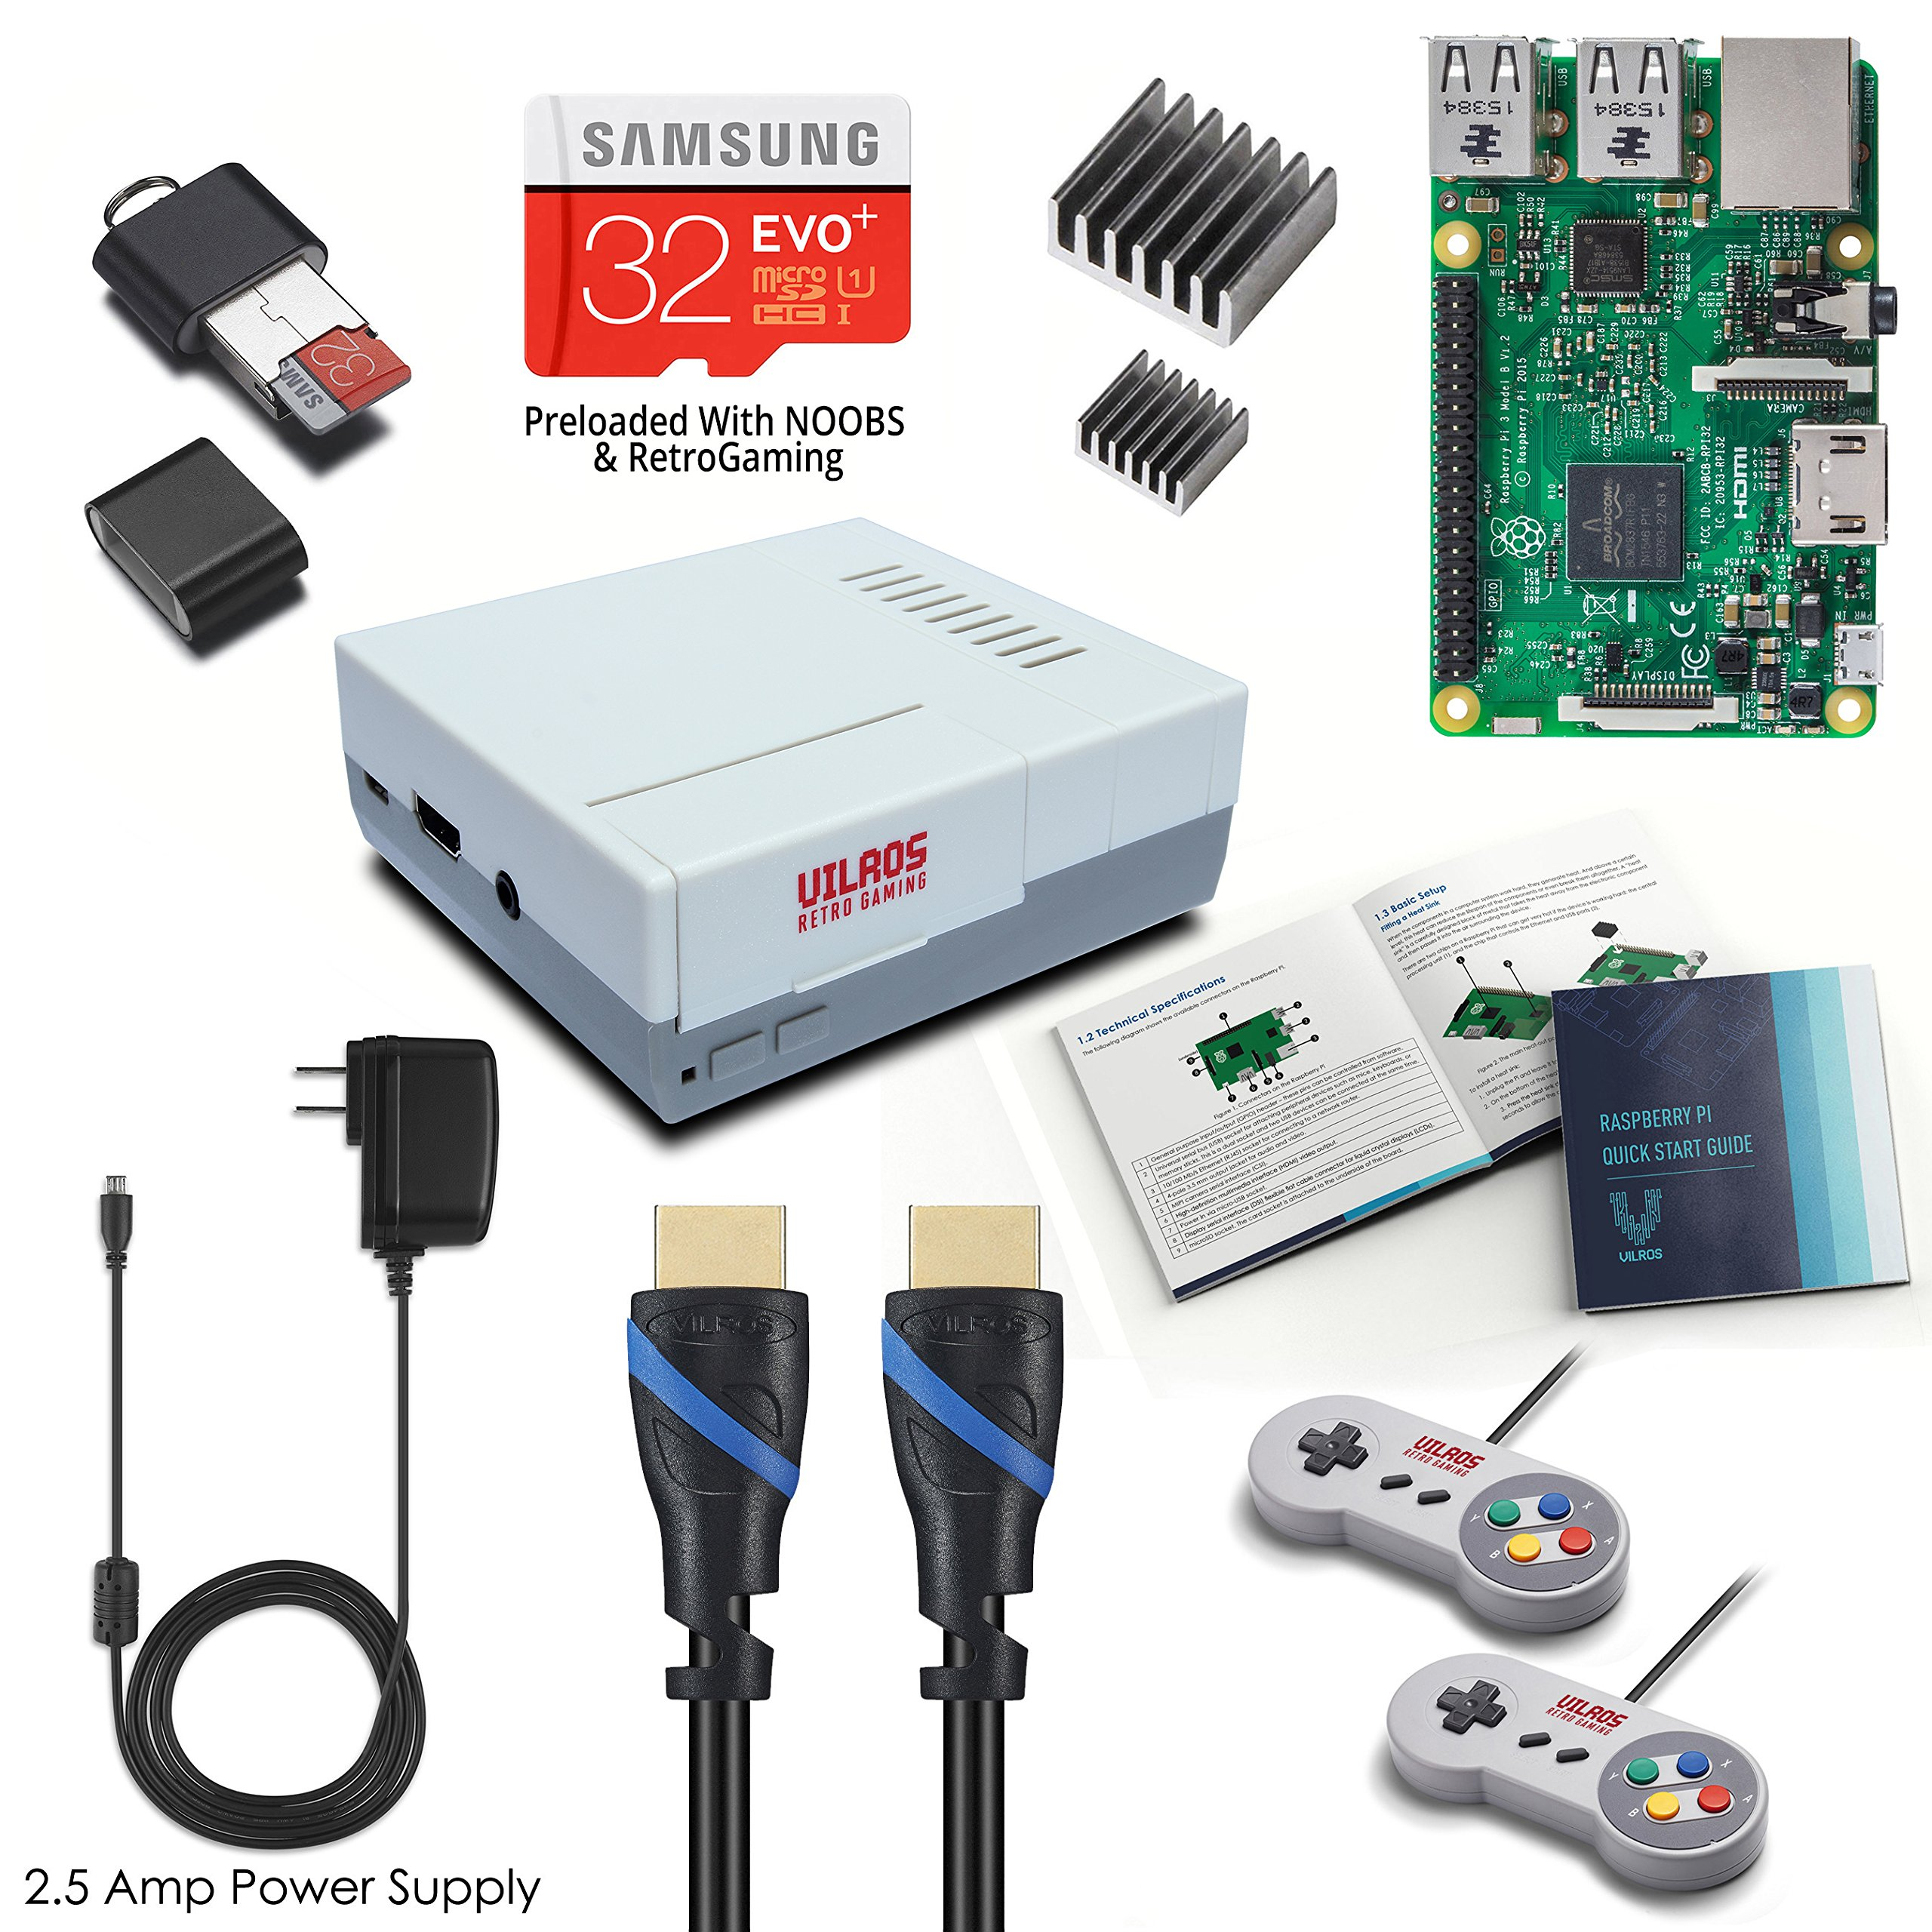 Vilros Raspberry Pi 3 RetroPie Arcade Gaming Kit with 2 Classic USB Gamepads by Vilros